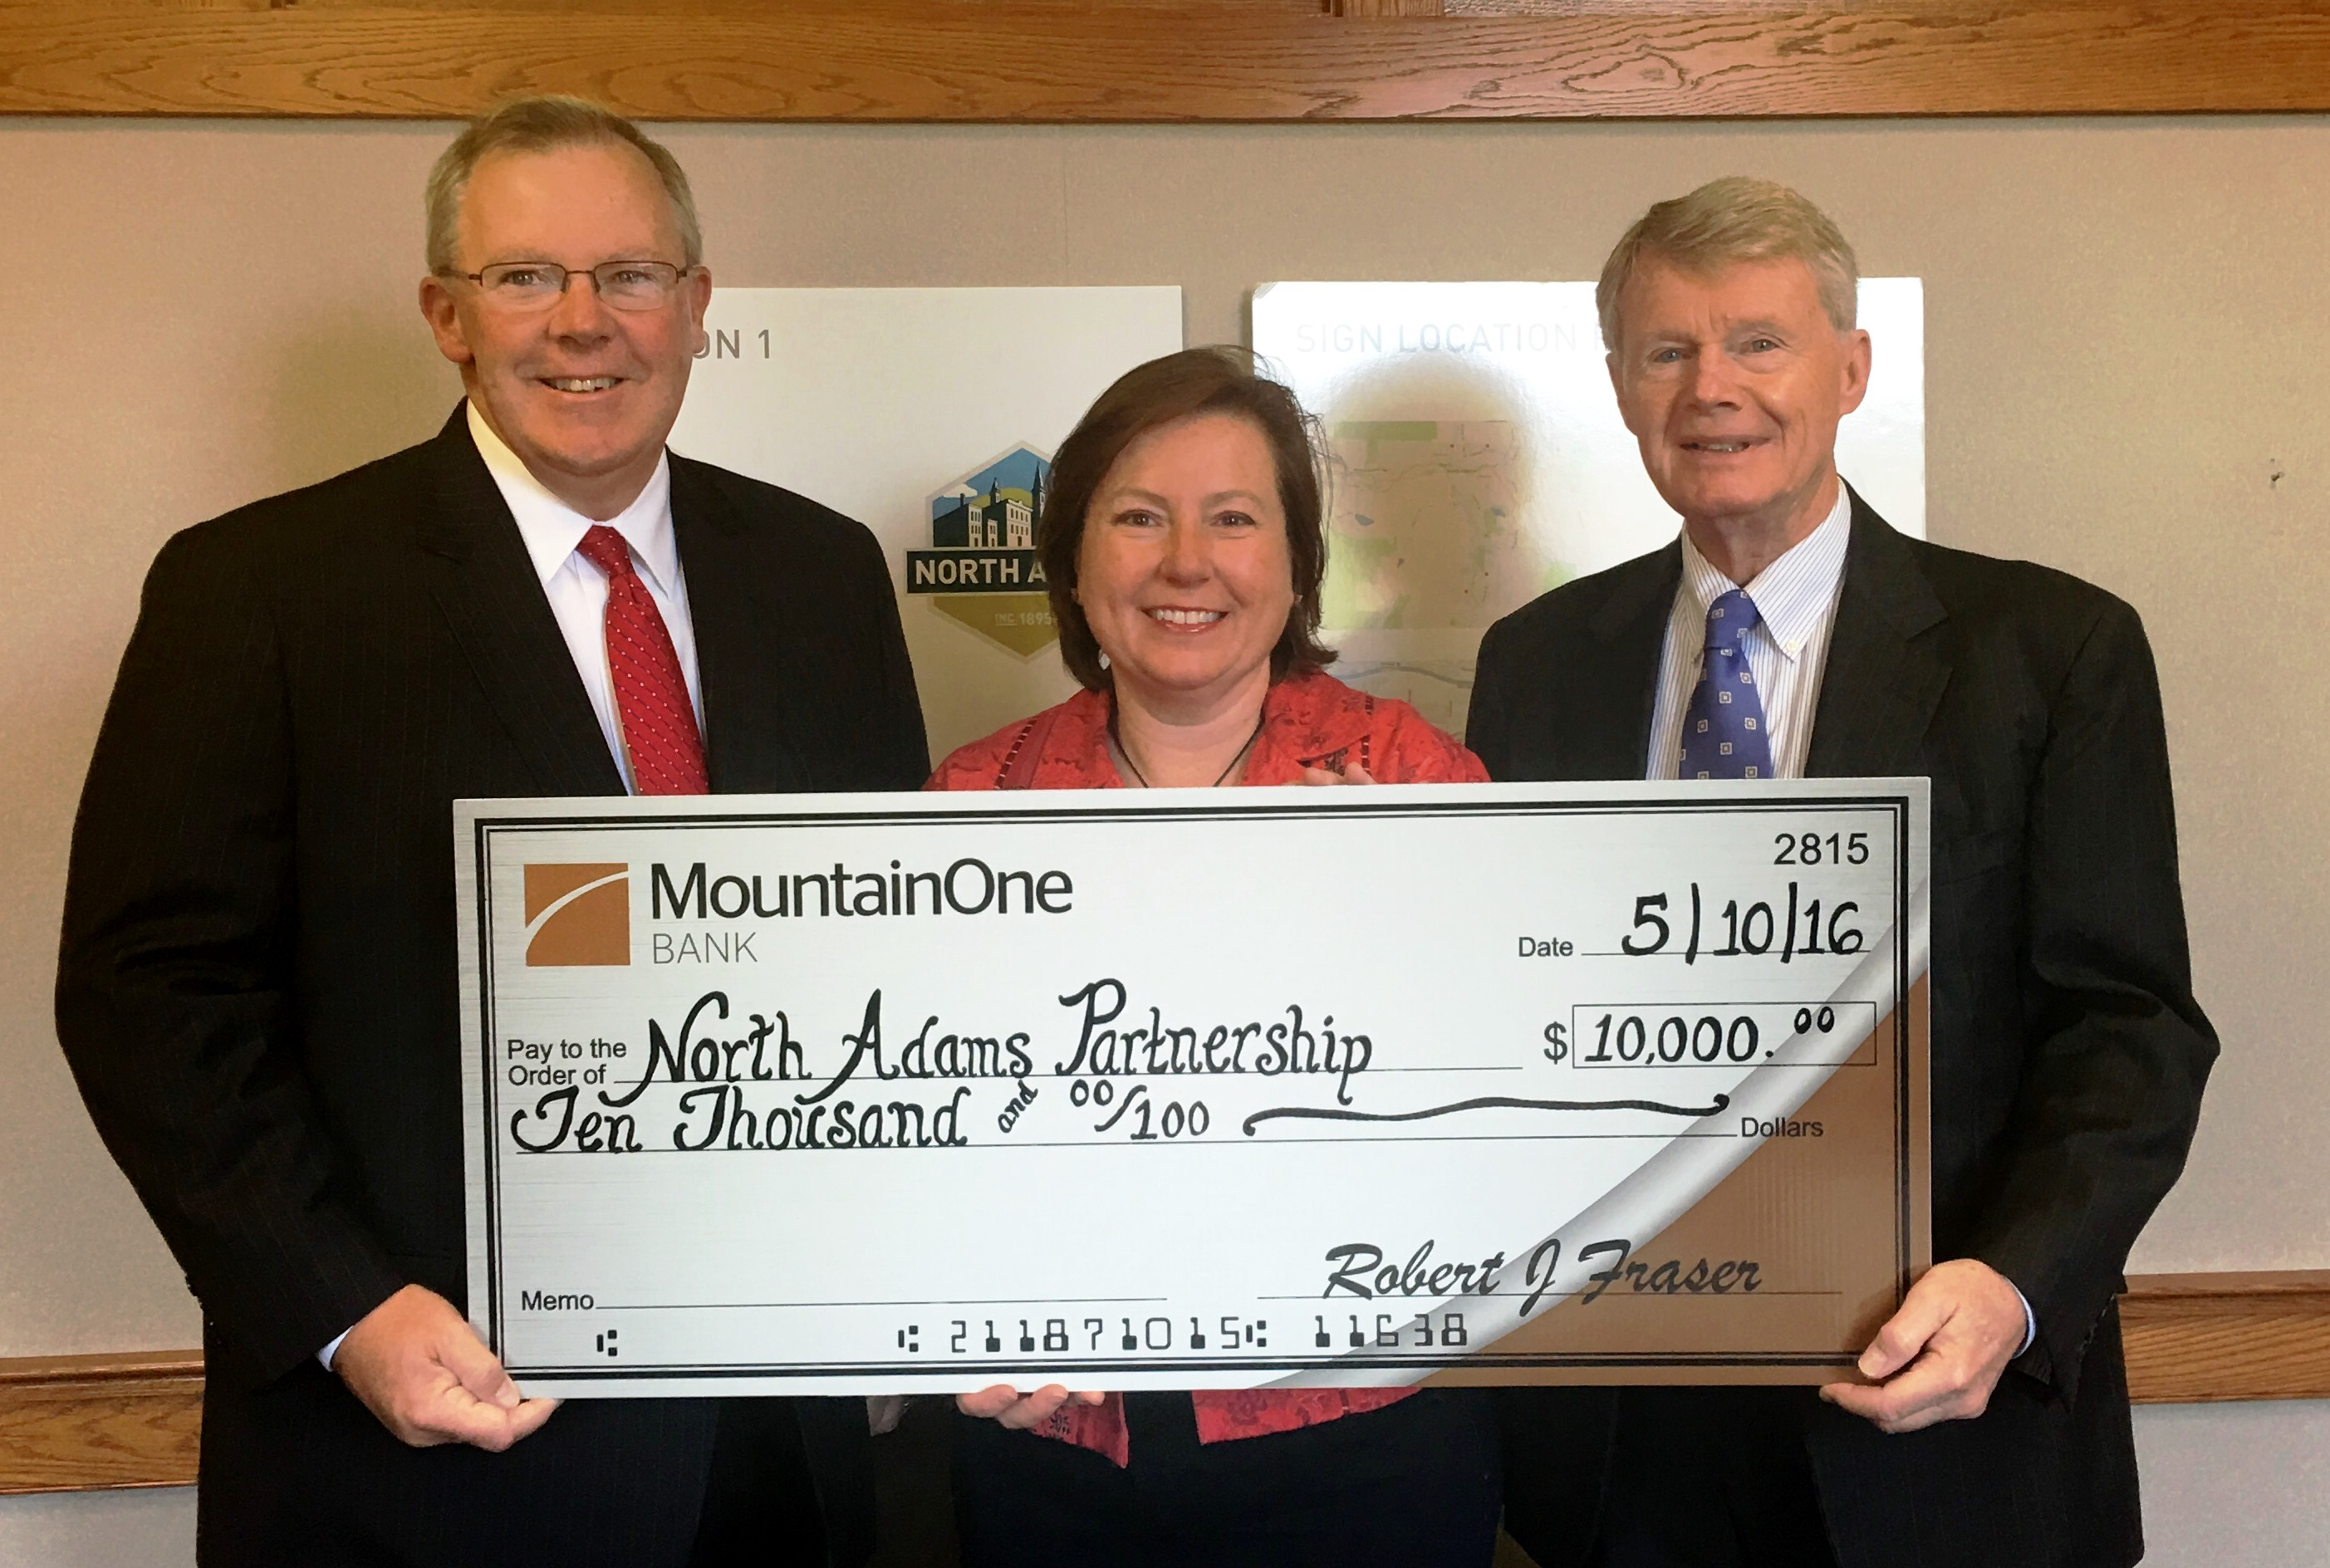 North Adams Partnership donation check